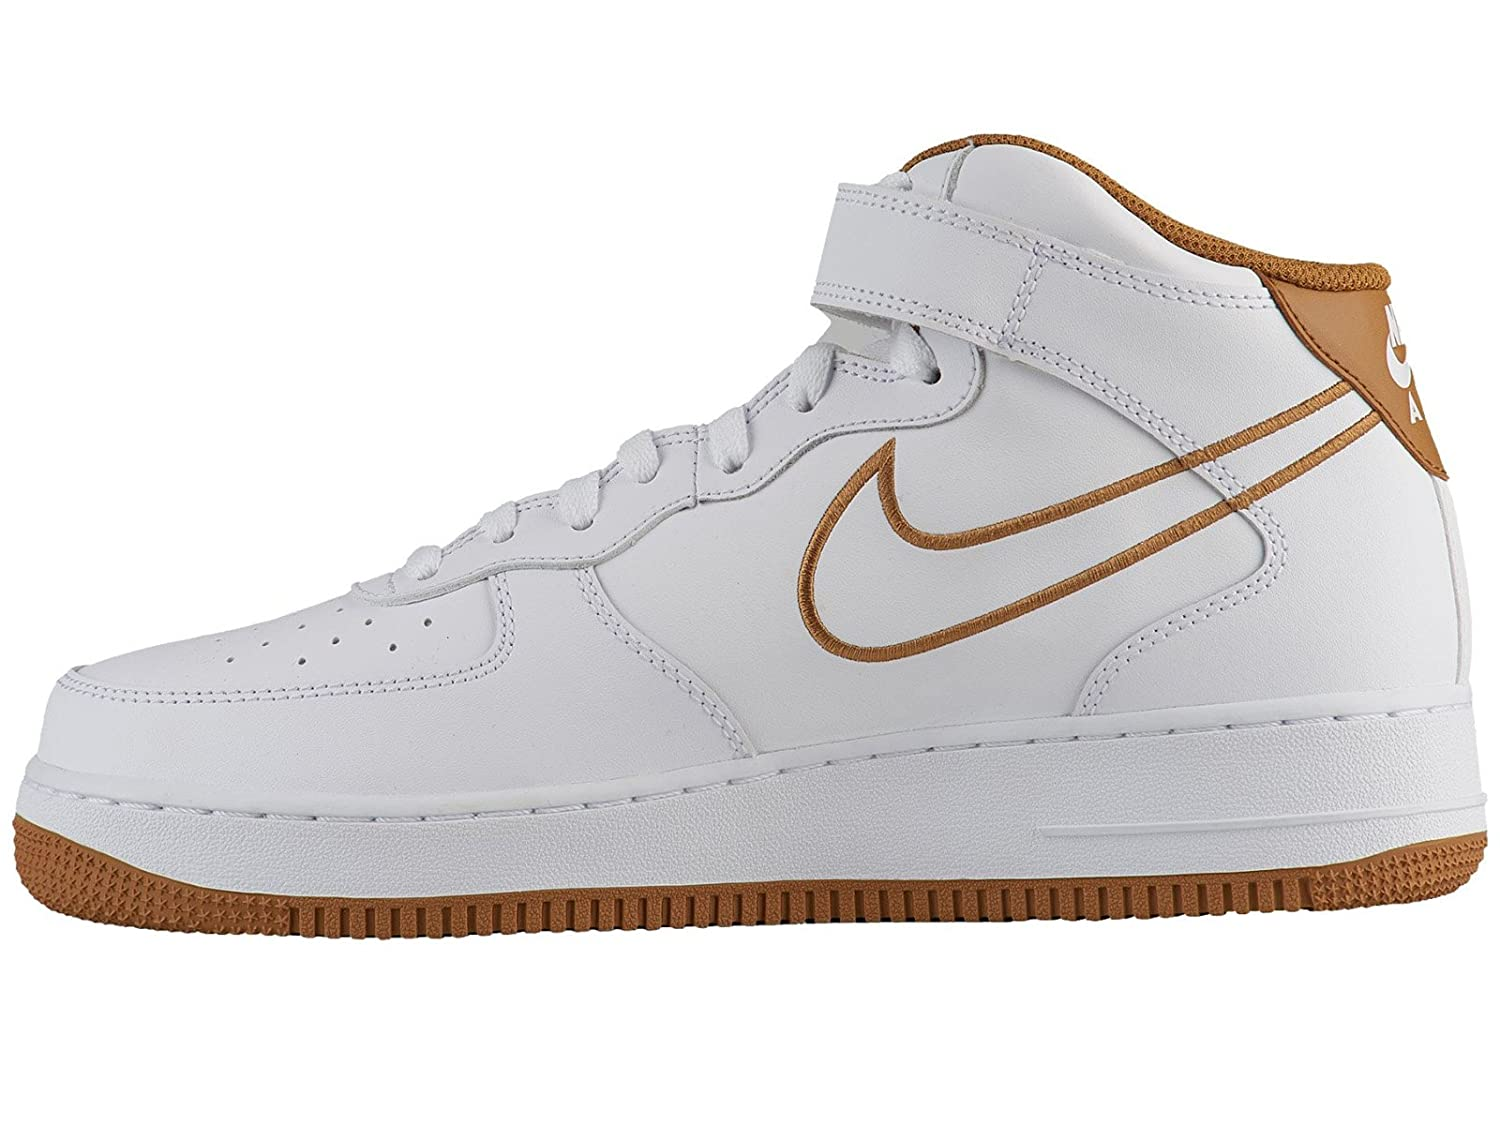 Nike Air Force 1 Mid 07 Lthr Zapatos 1 de 07 Bronze Baloncesto para